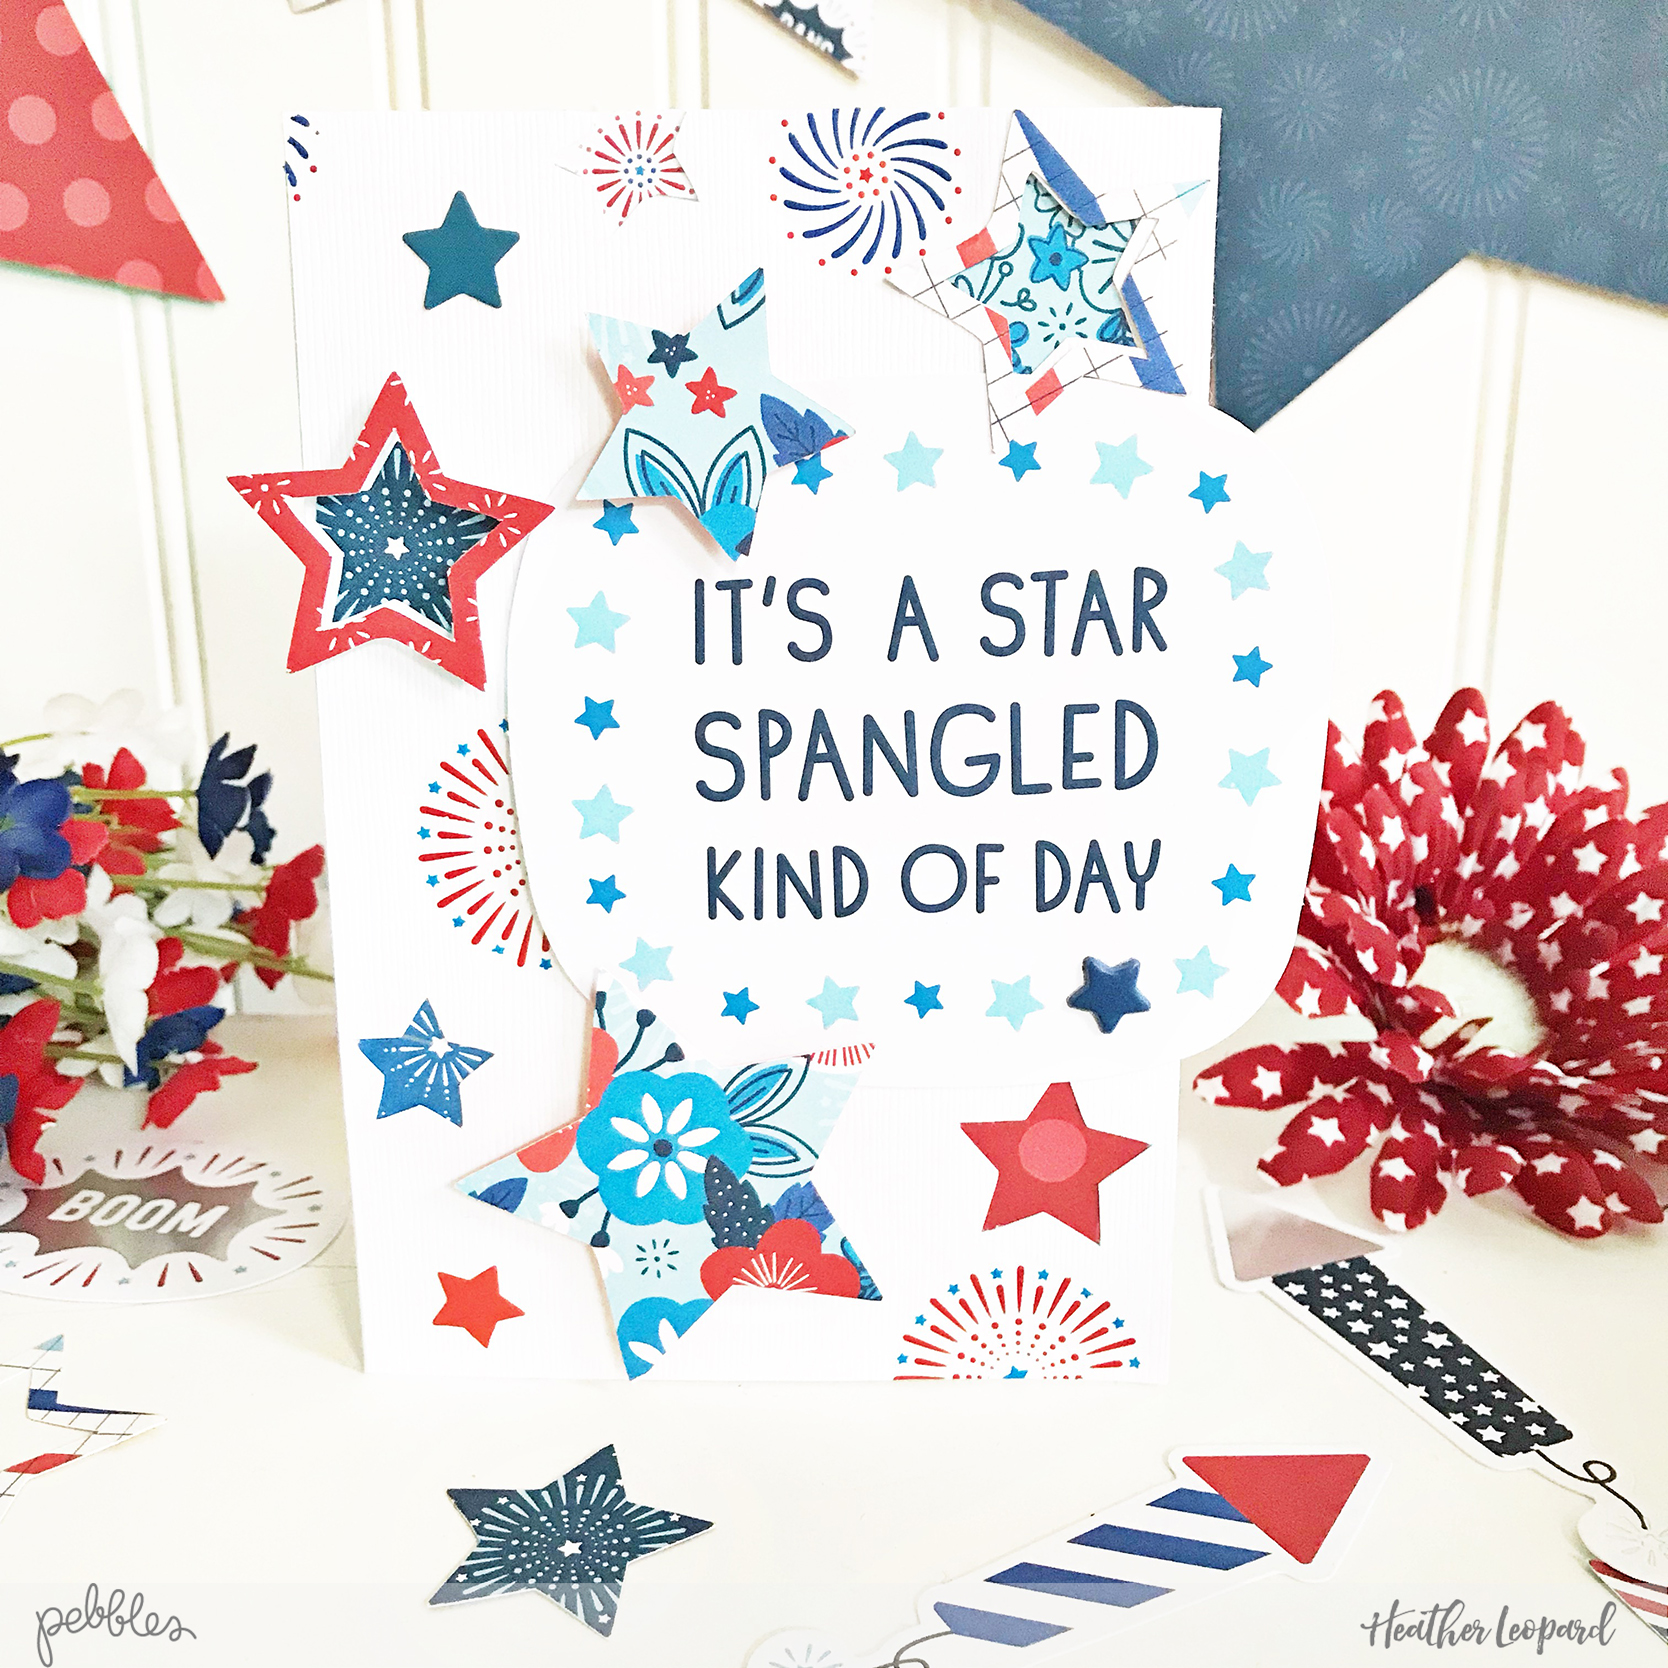 Pebbles Patriotic Cards or General Purpose Cards by @HeatherLeopard using @pebblesinc #LandThatILove collection #madewithpebbles #cards #patriotic #stars #america #4thofJuly